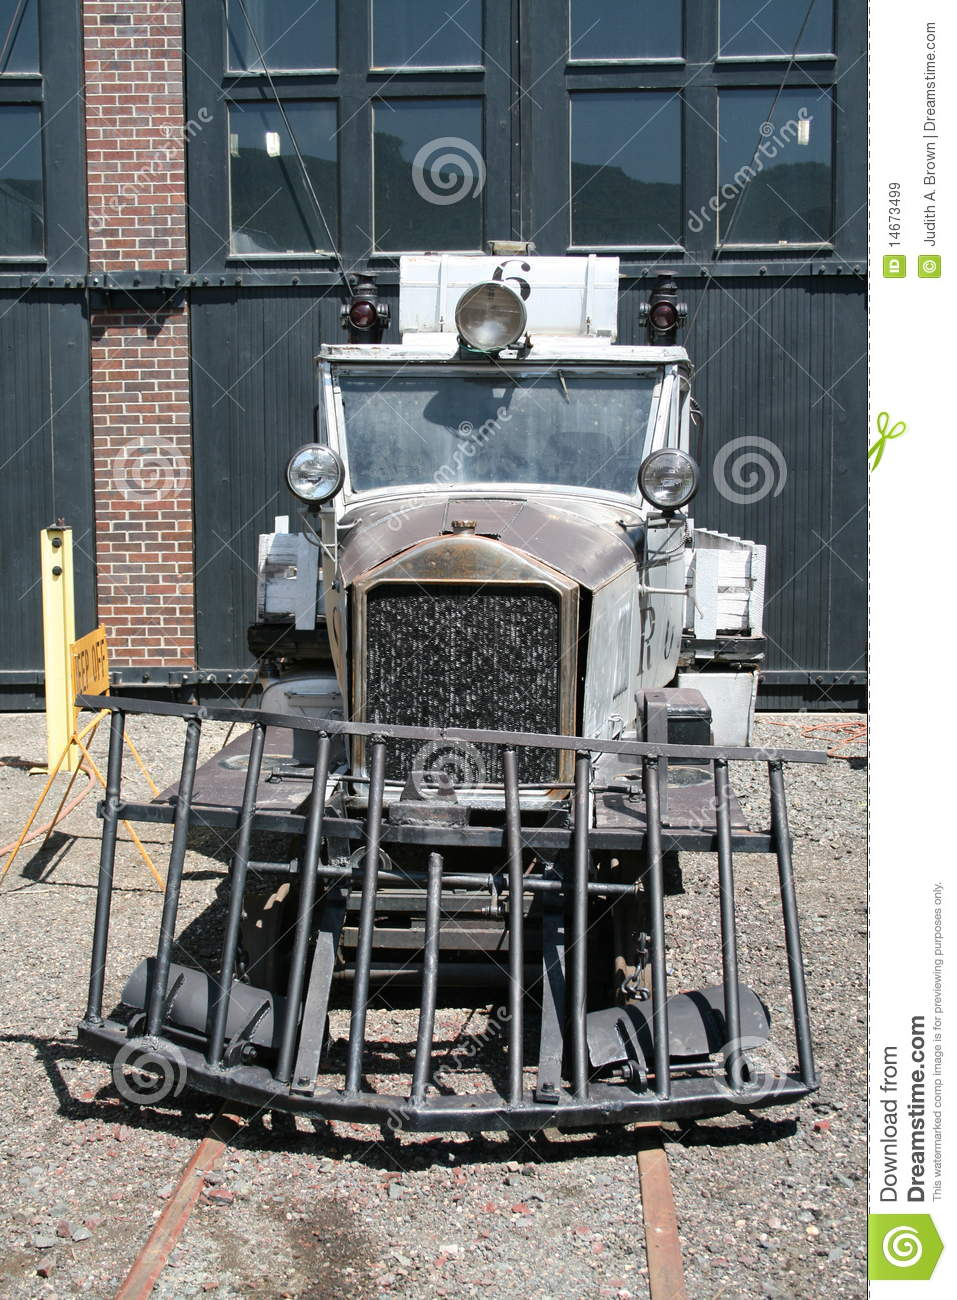 Galloping Goose editorial stock image  Image of museum - 14673499